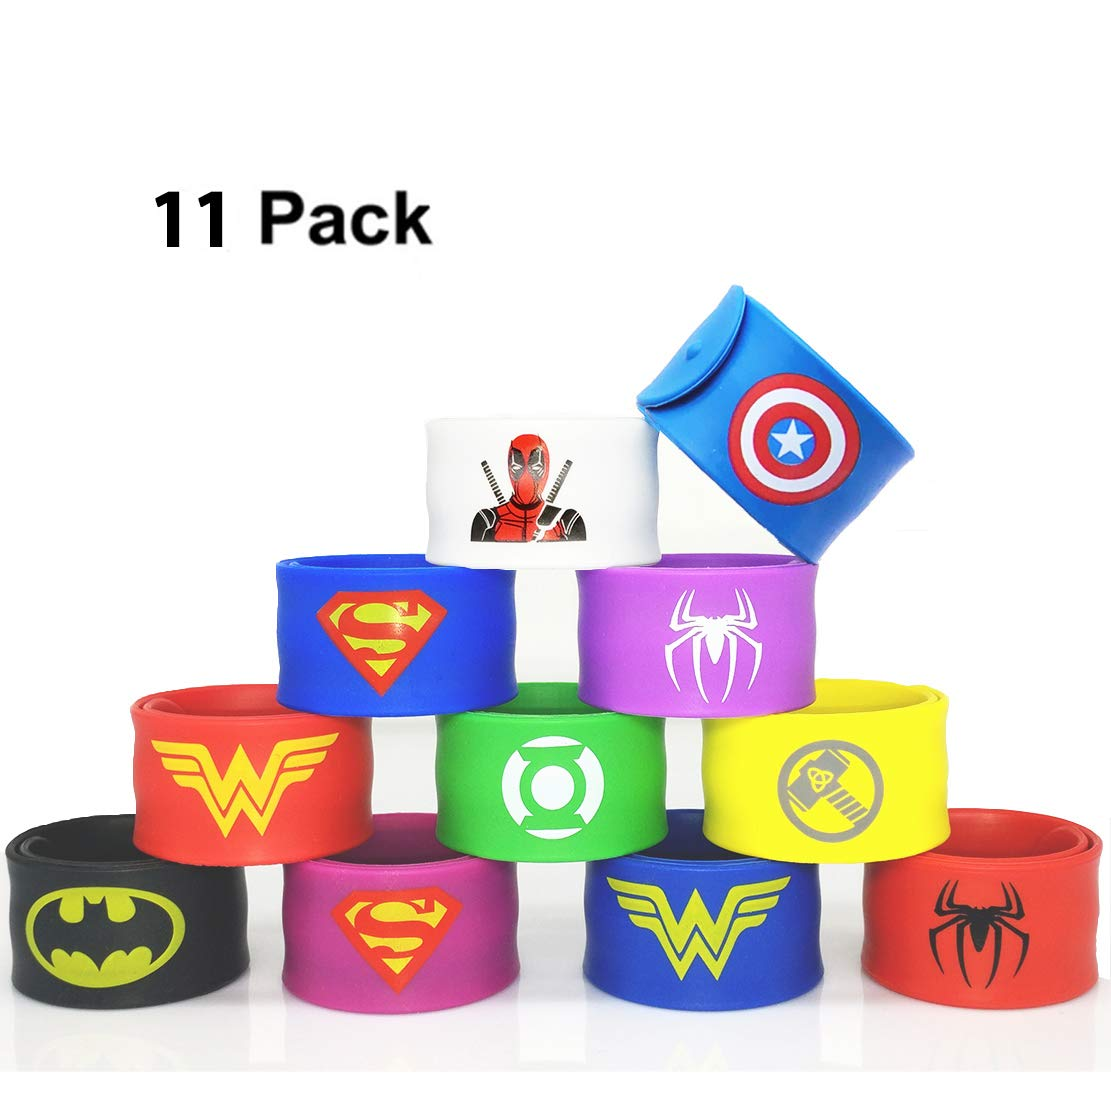 11 Pack Superheroes Slap Bands for Kids Party Supplies Snap Bracelets Party Bag Fillers for Boys Adults Birthday Kids Superhero Party Favors Toys (Style 1) Forwin Seller